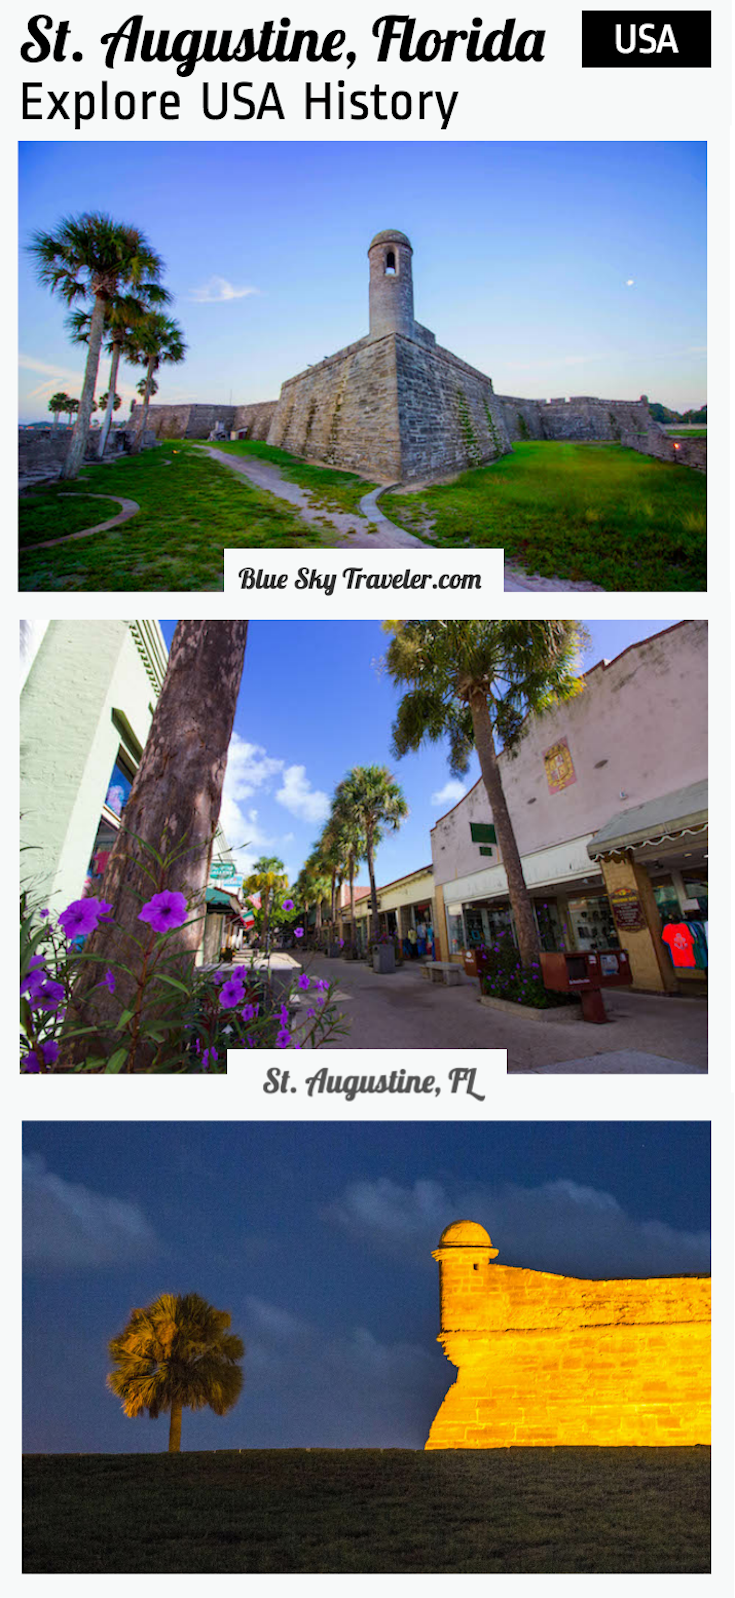 Take a weekend getaway to St. Augustine, Florida to explore history in first USA city on the East Coast. See more - srcset=